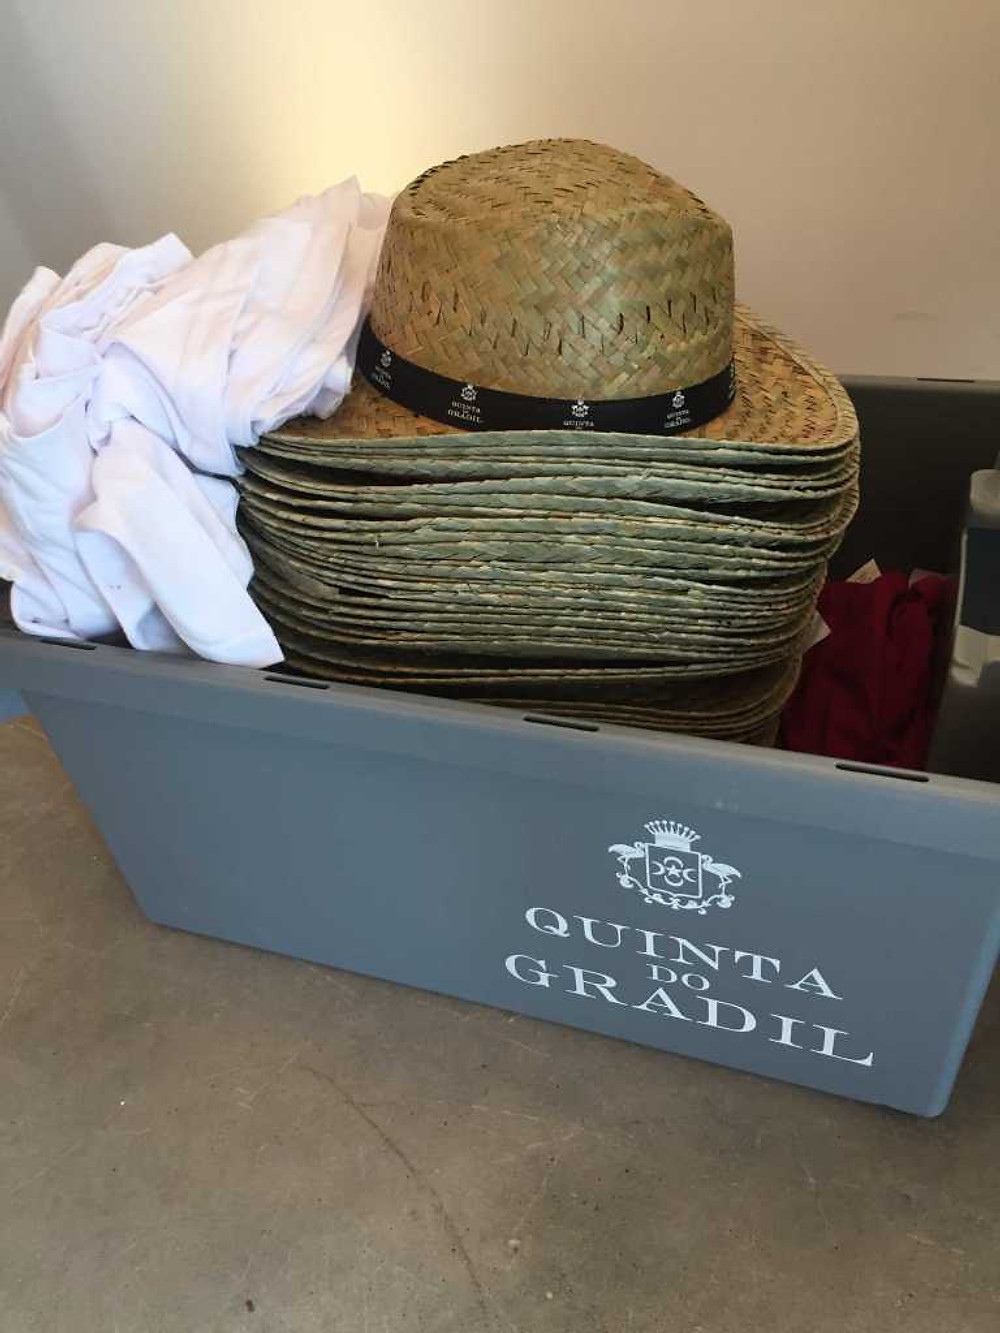 Quinta do Gradil Vindima kit: straw hat and t-shirts